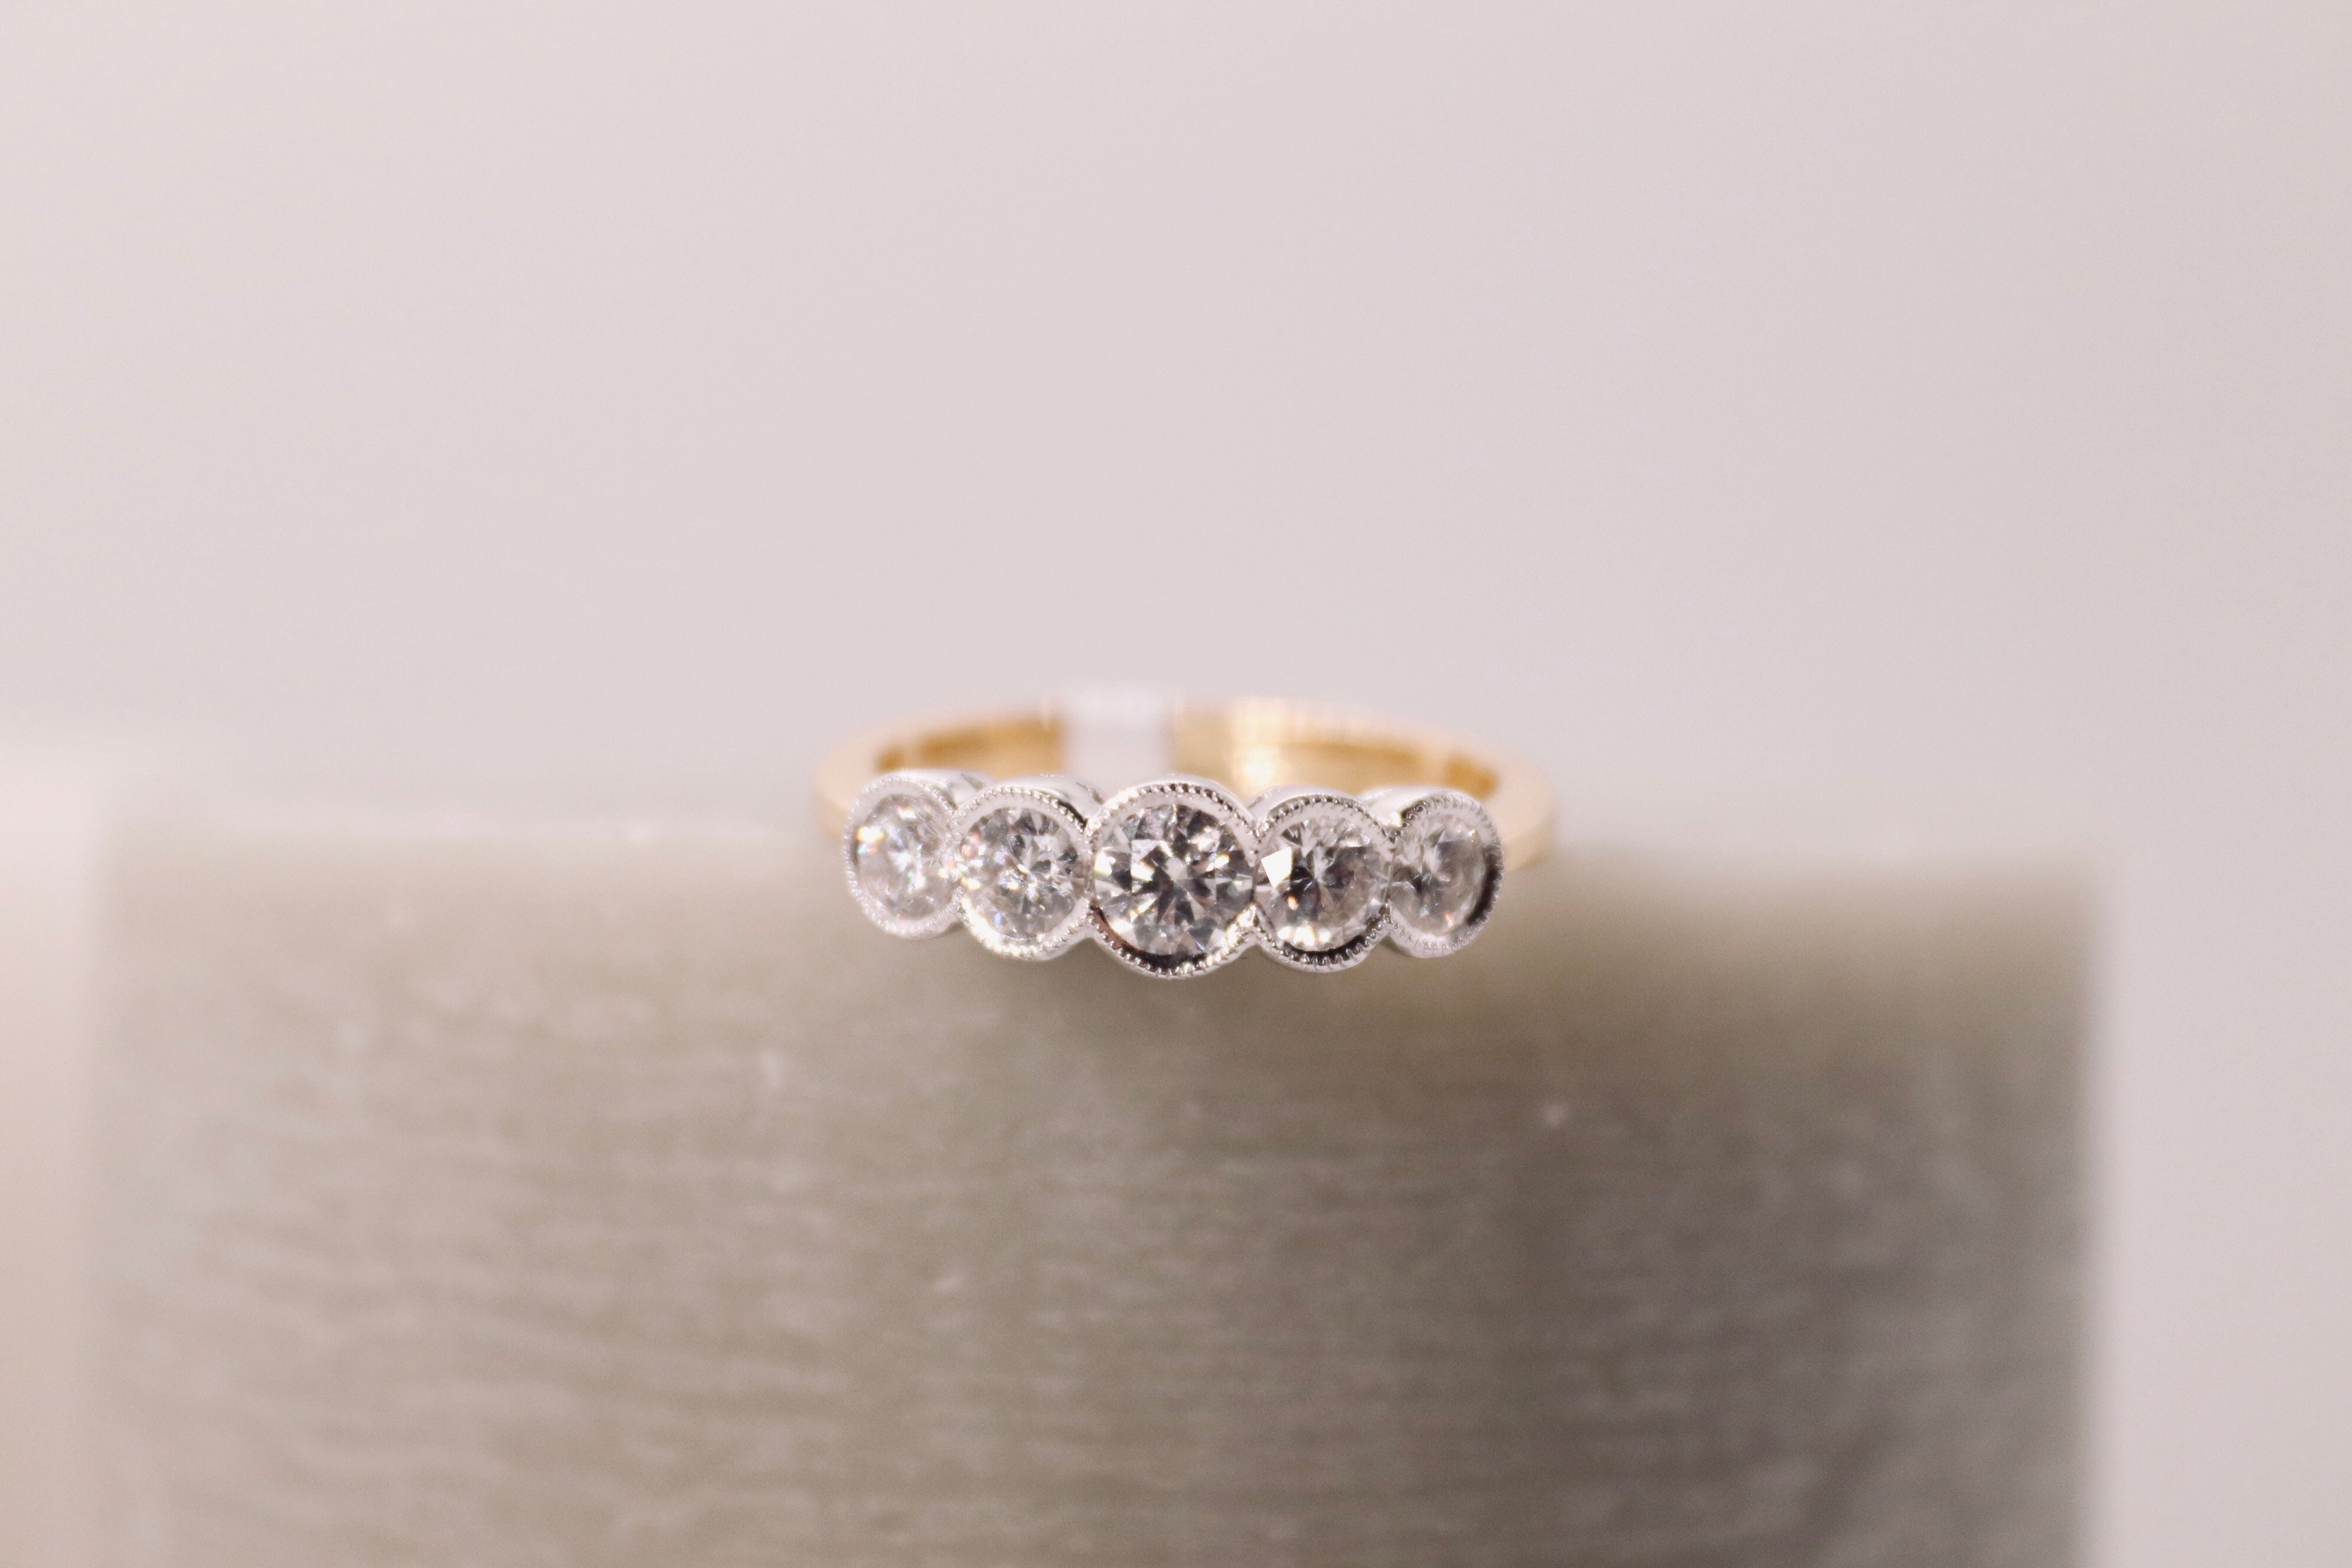 5 Stone Rubover Set Diamond Ring